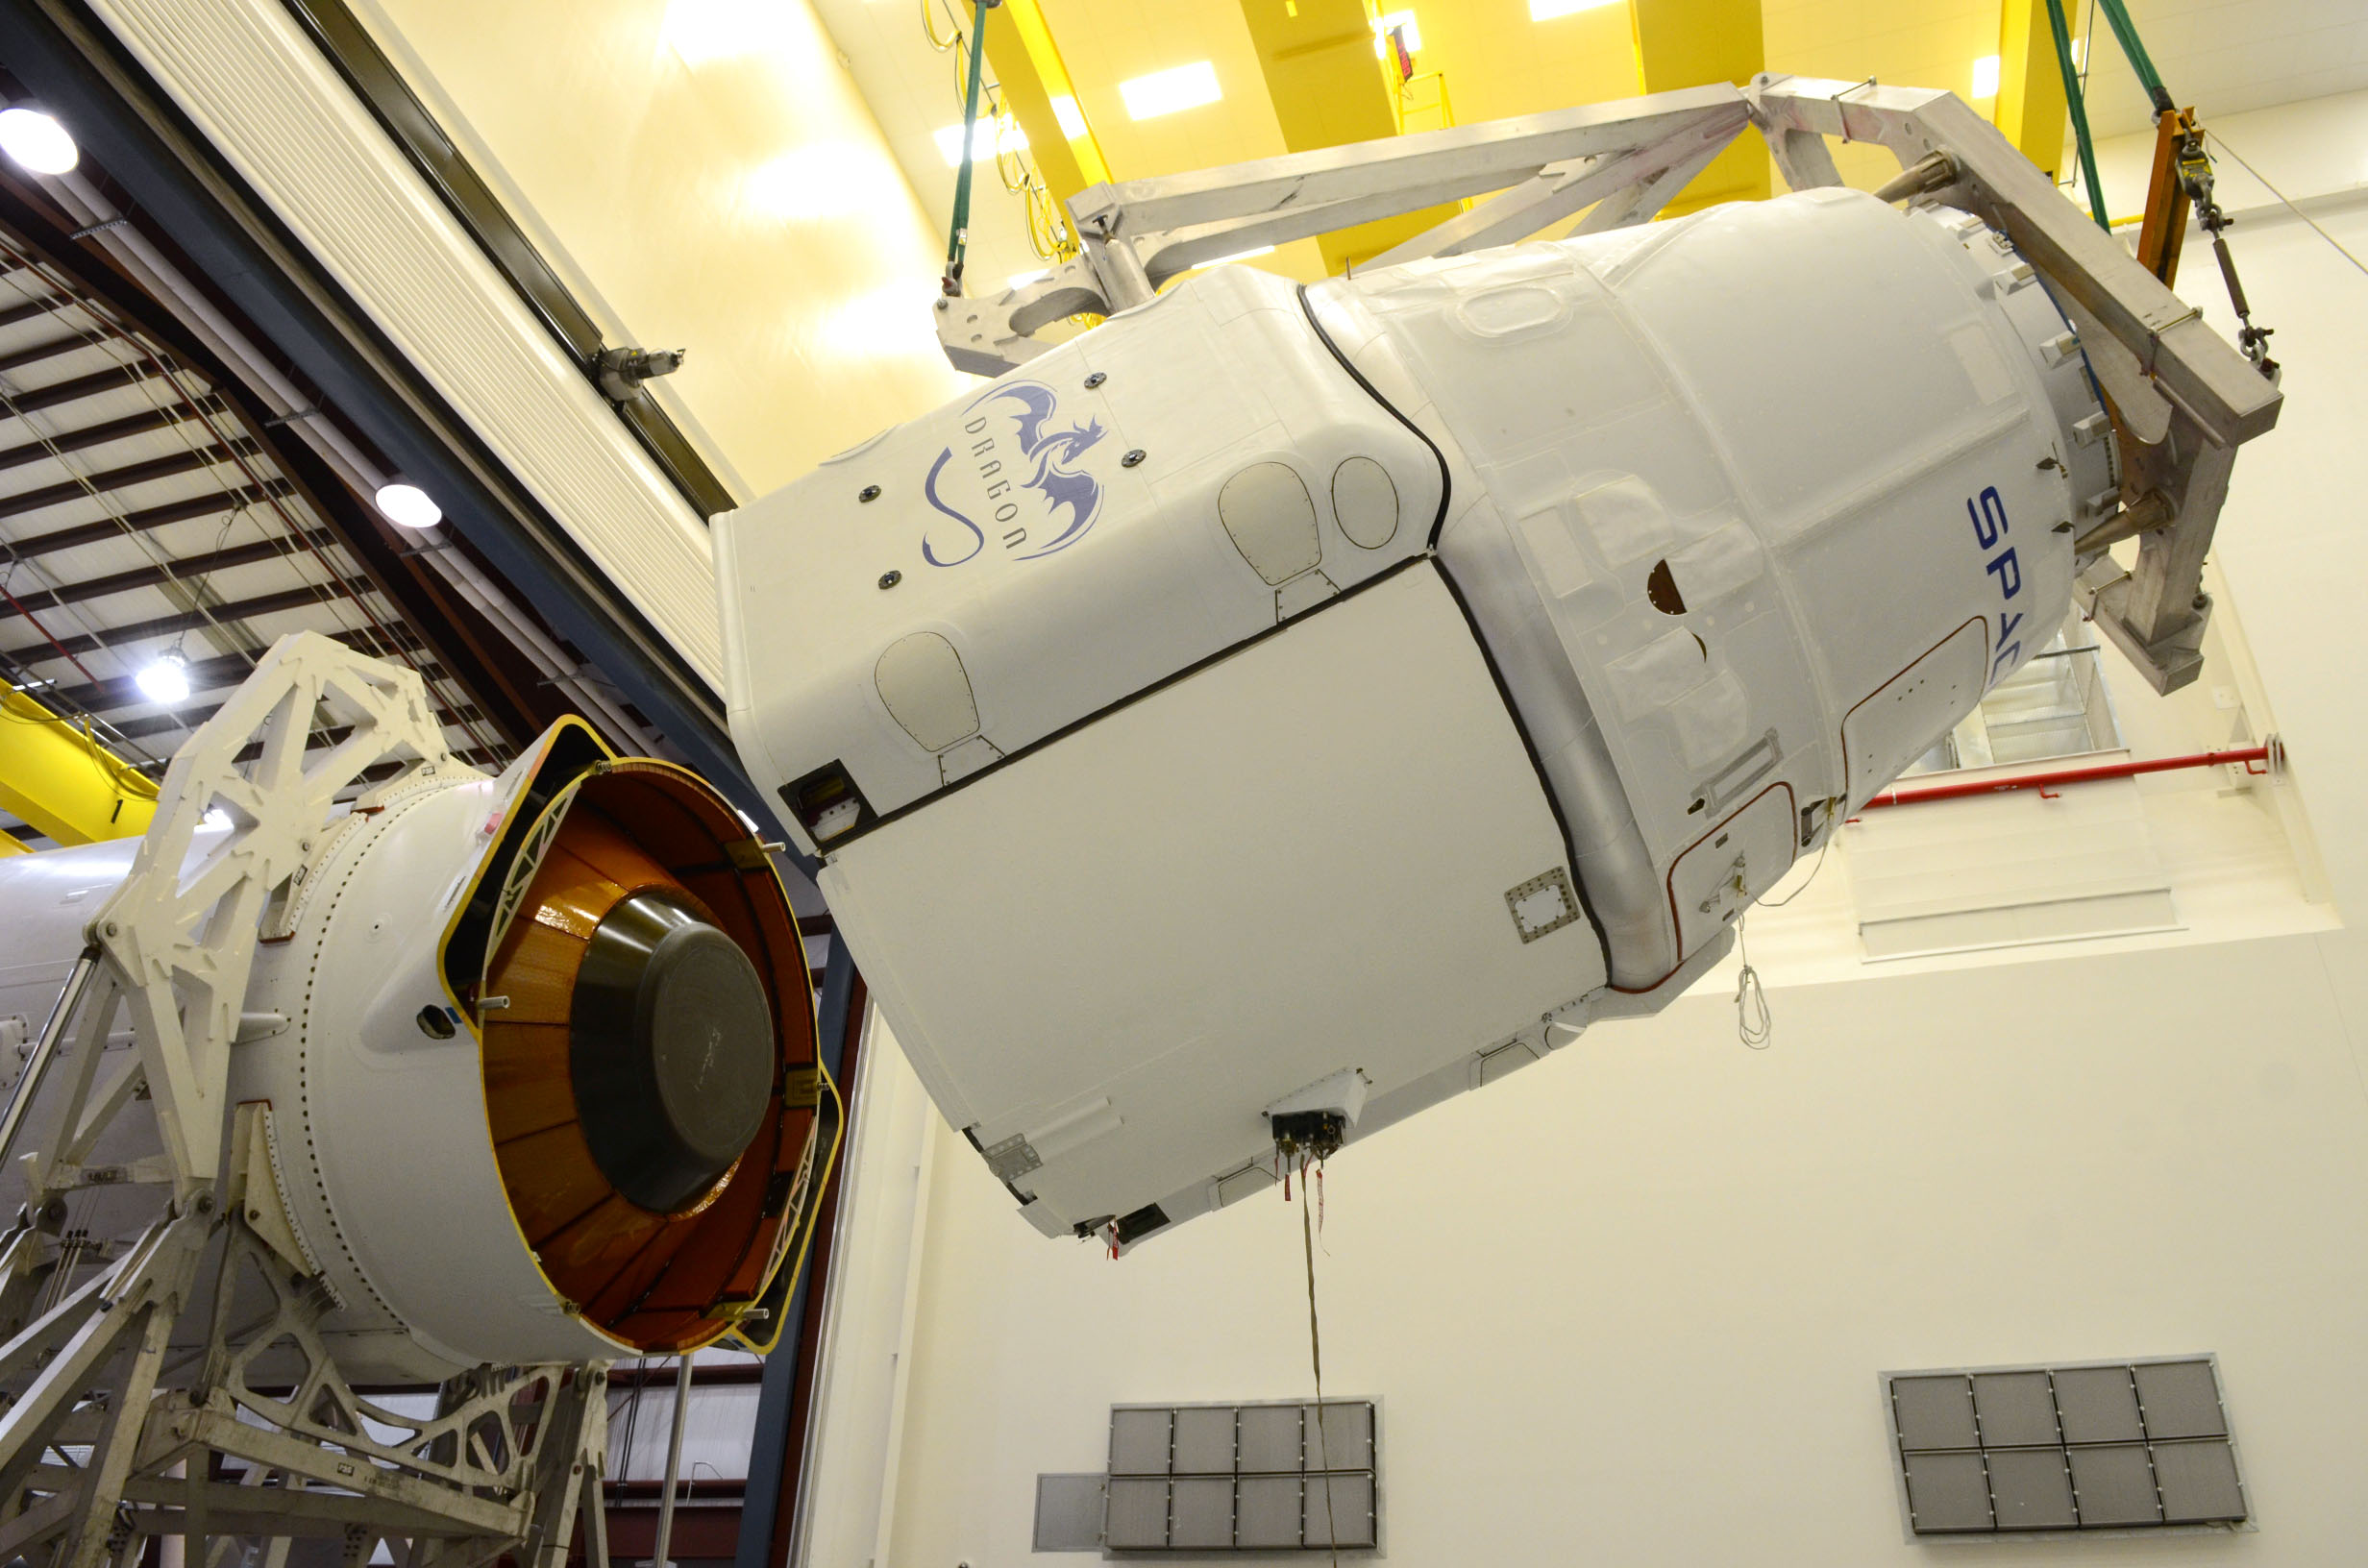 Engineers turn Dragon horizontal and attach it to the second stage of the Falcon 9 rocket. Photo Credit: SpaceX